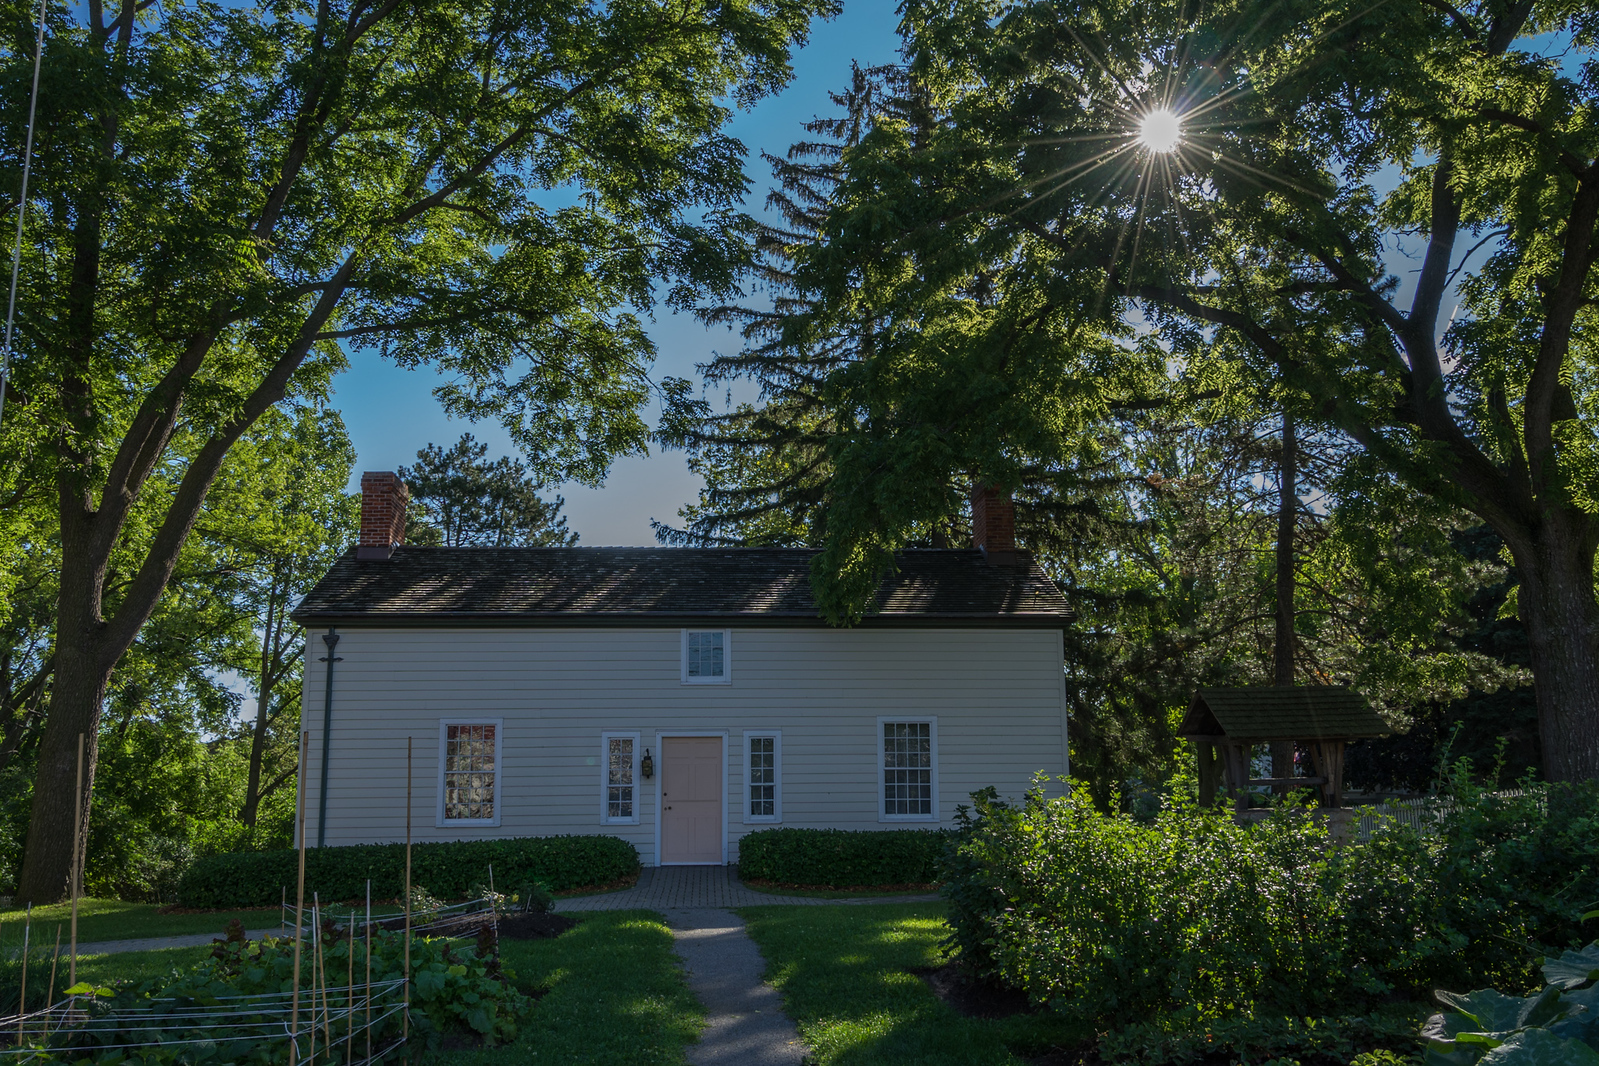 Niagara Falls Road Trip stop #6: the Laura Secord House